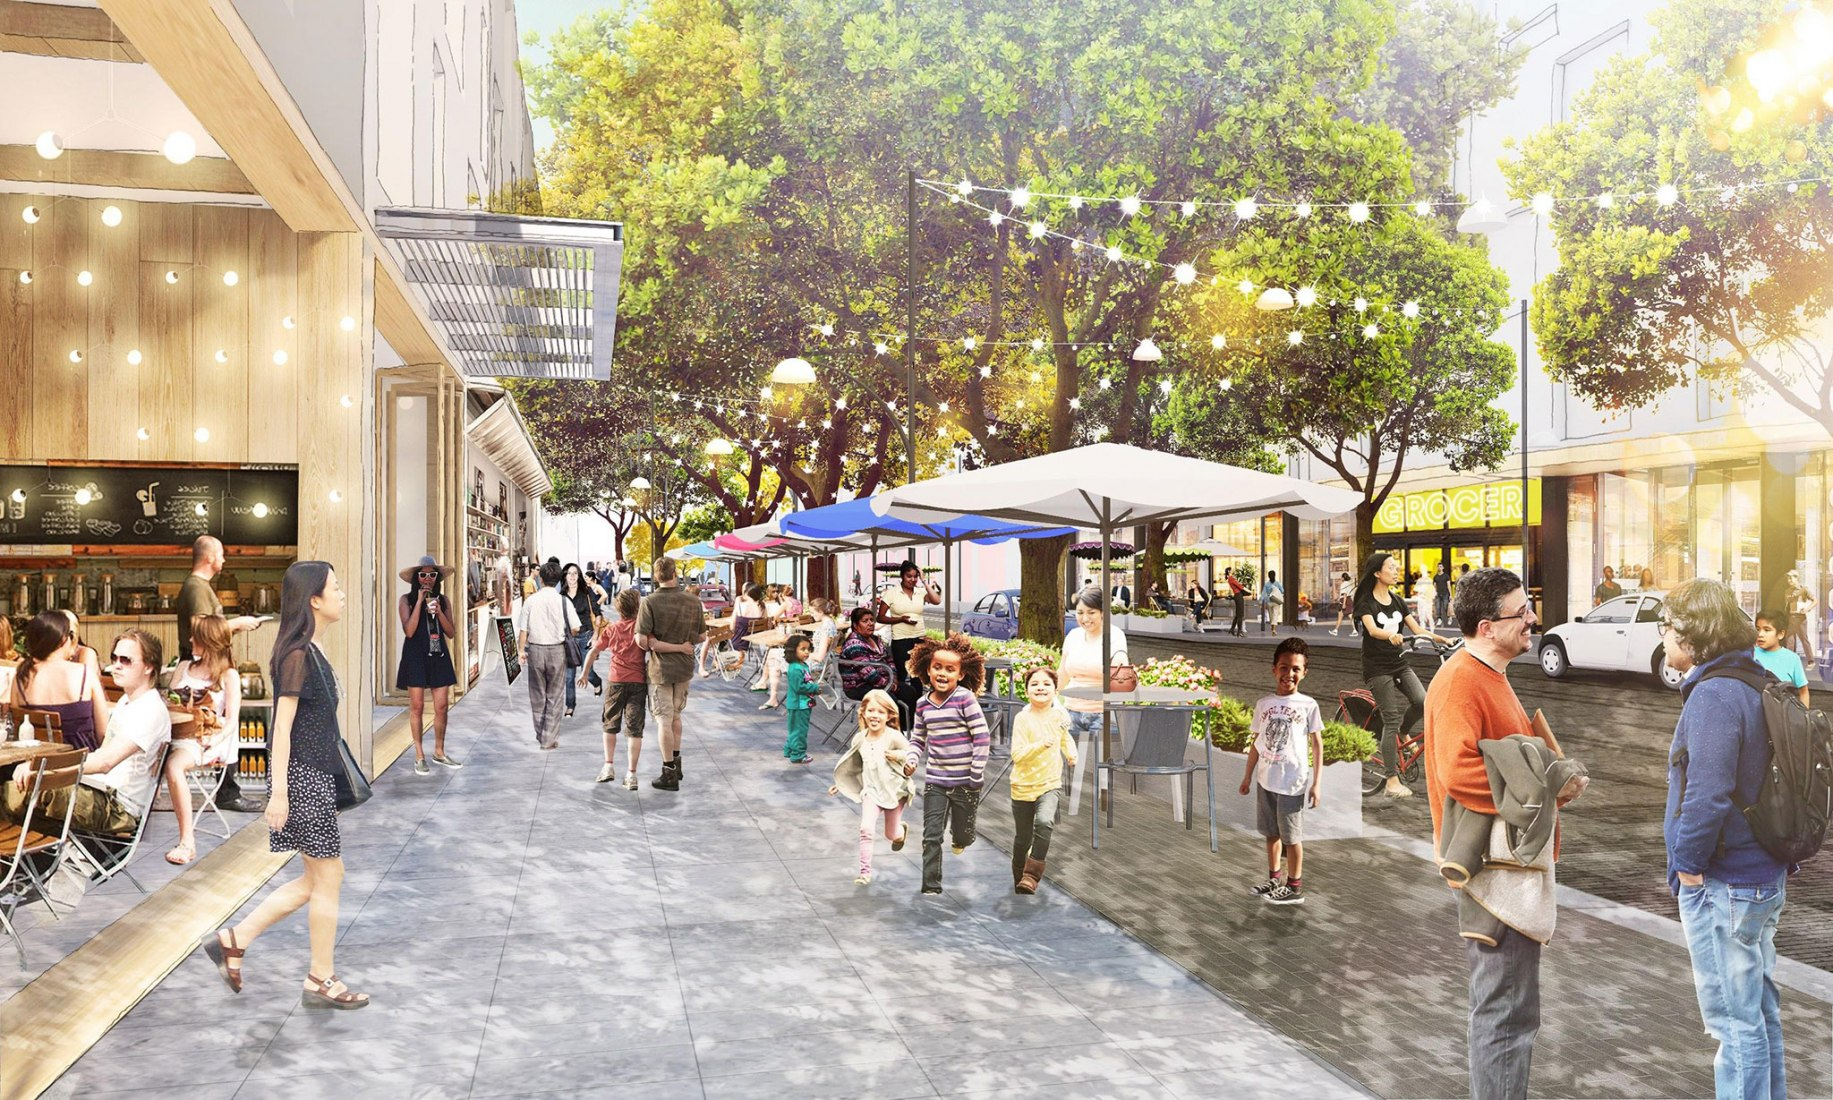 Renderings courtesy of OMA New York